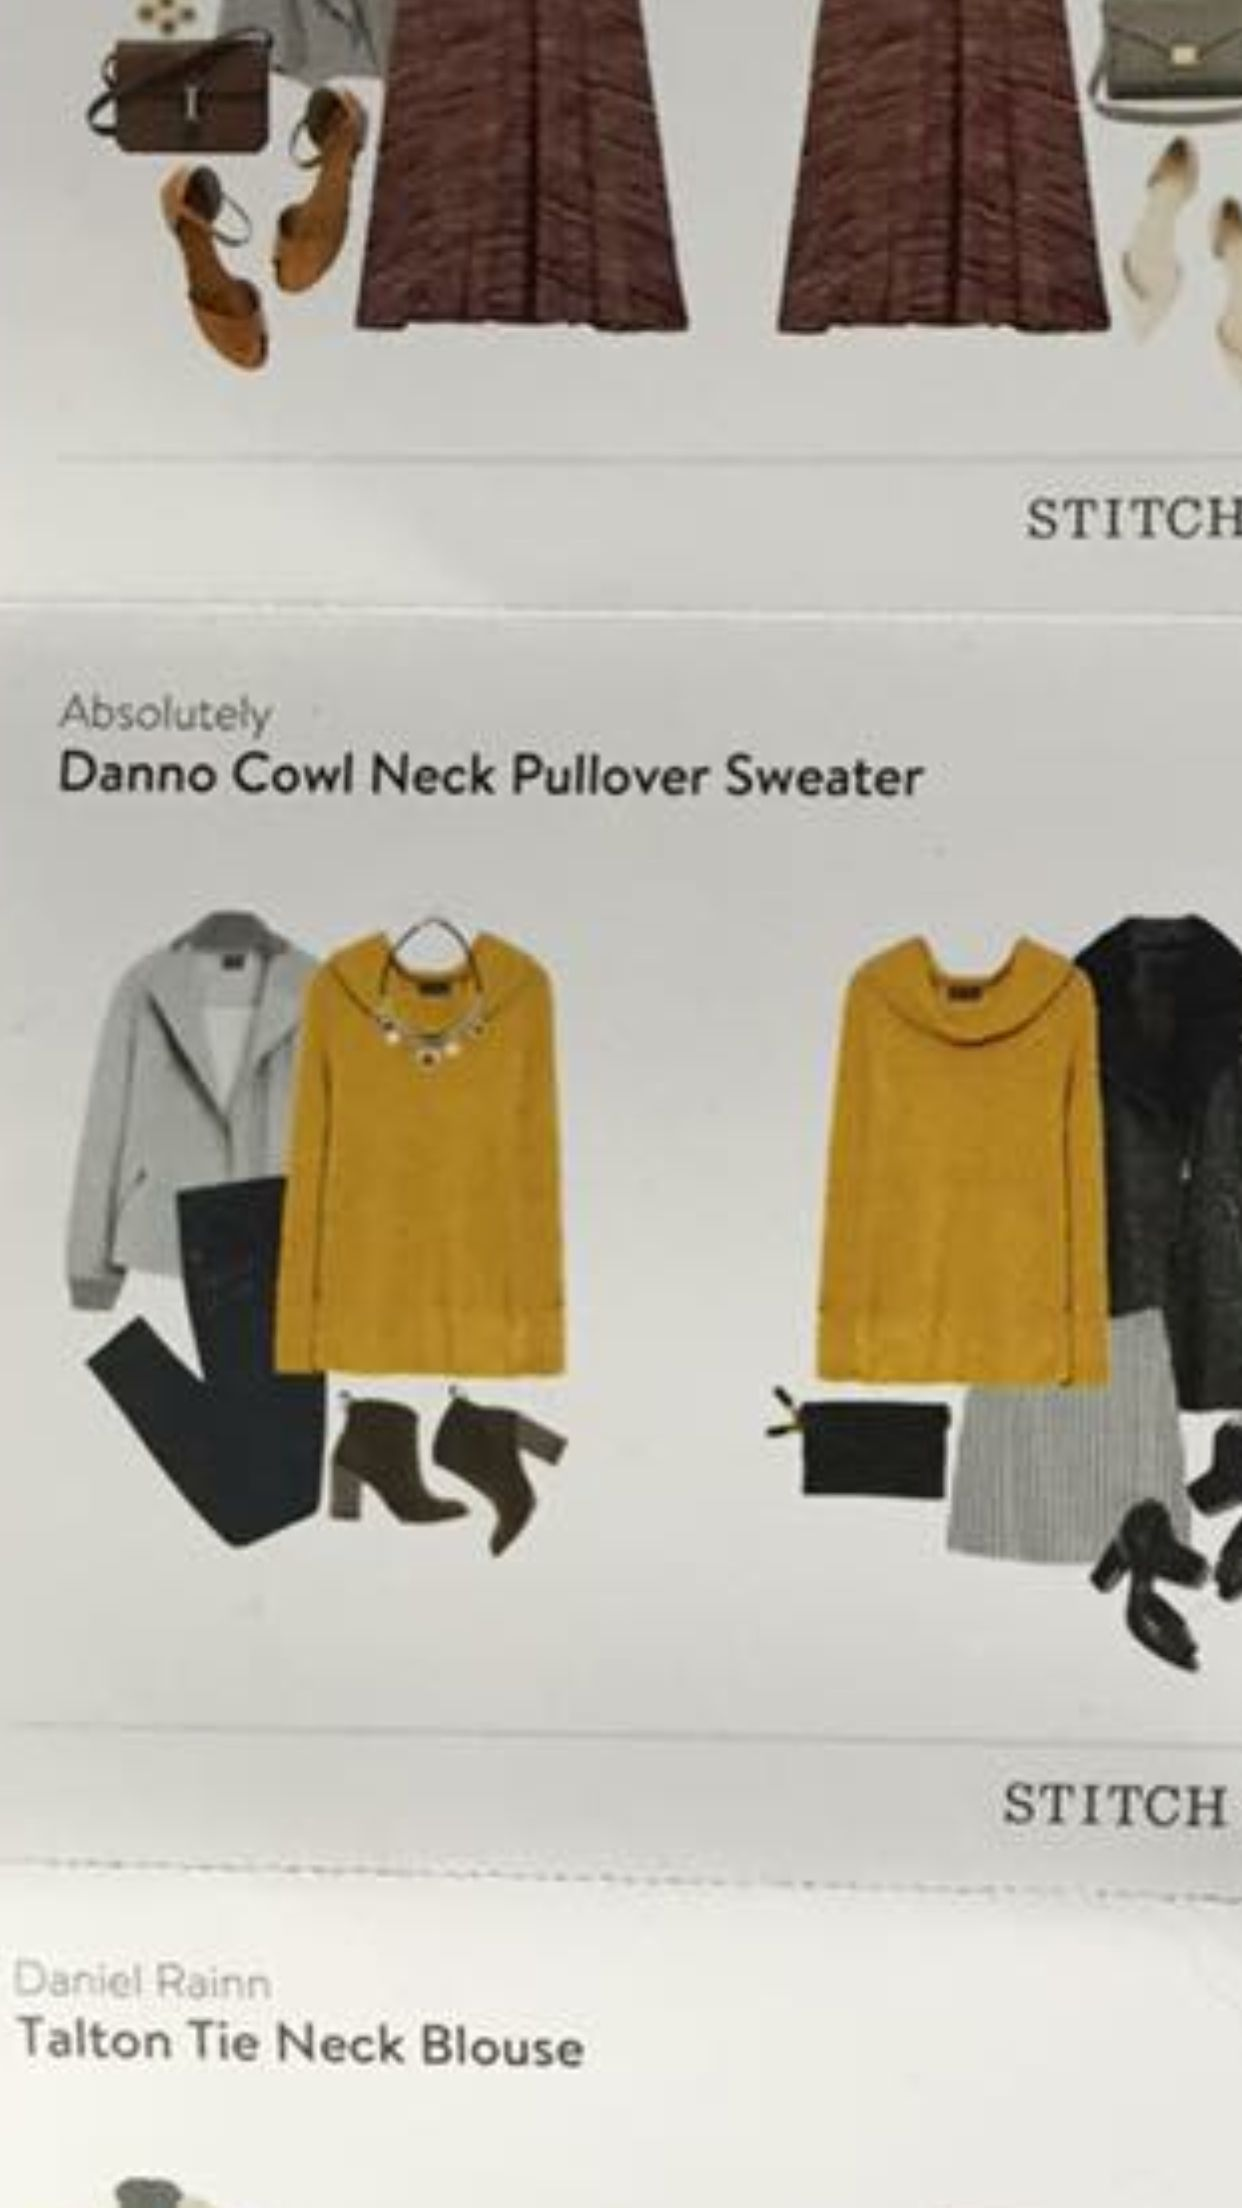 Absolutely Danno Cowl Neck Pullover. I've been wanting something ...